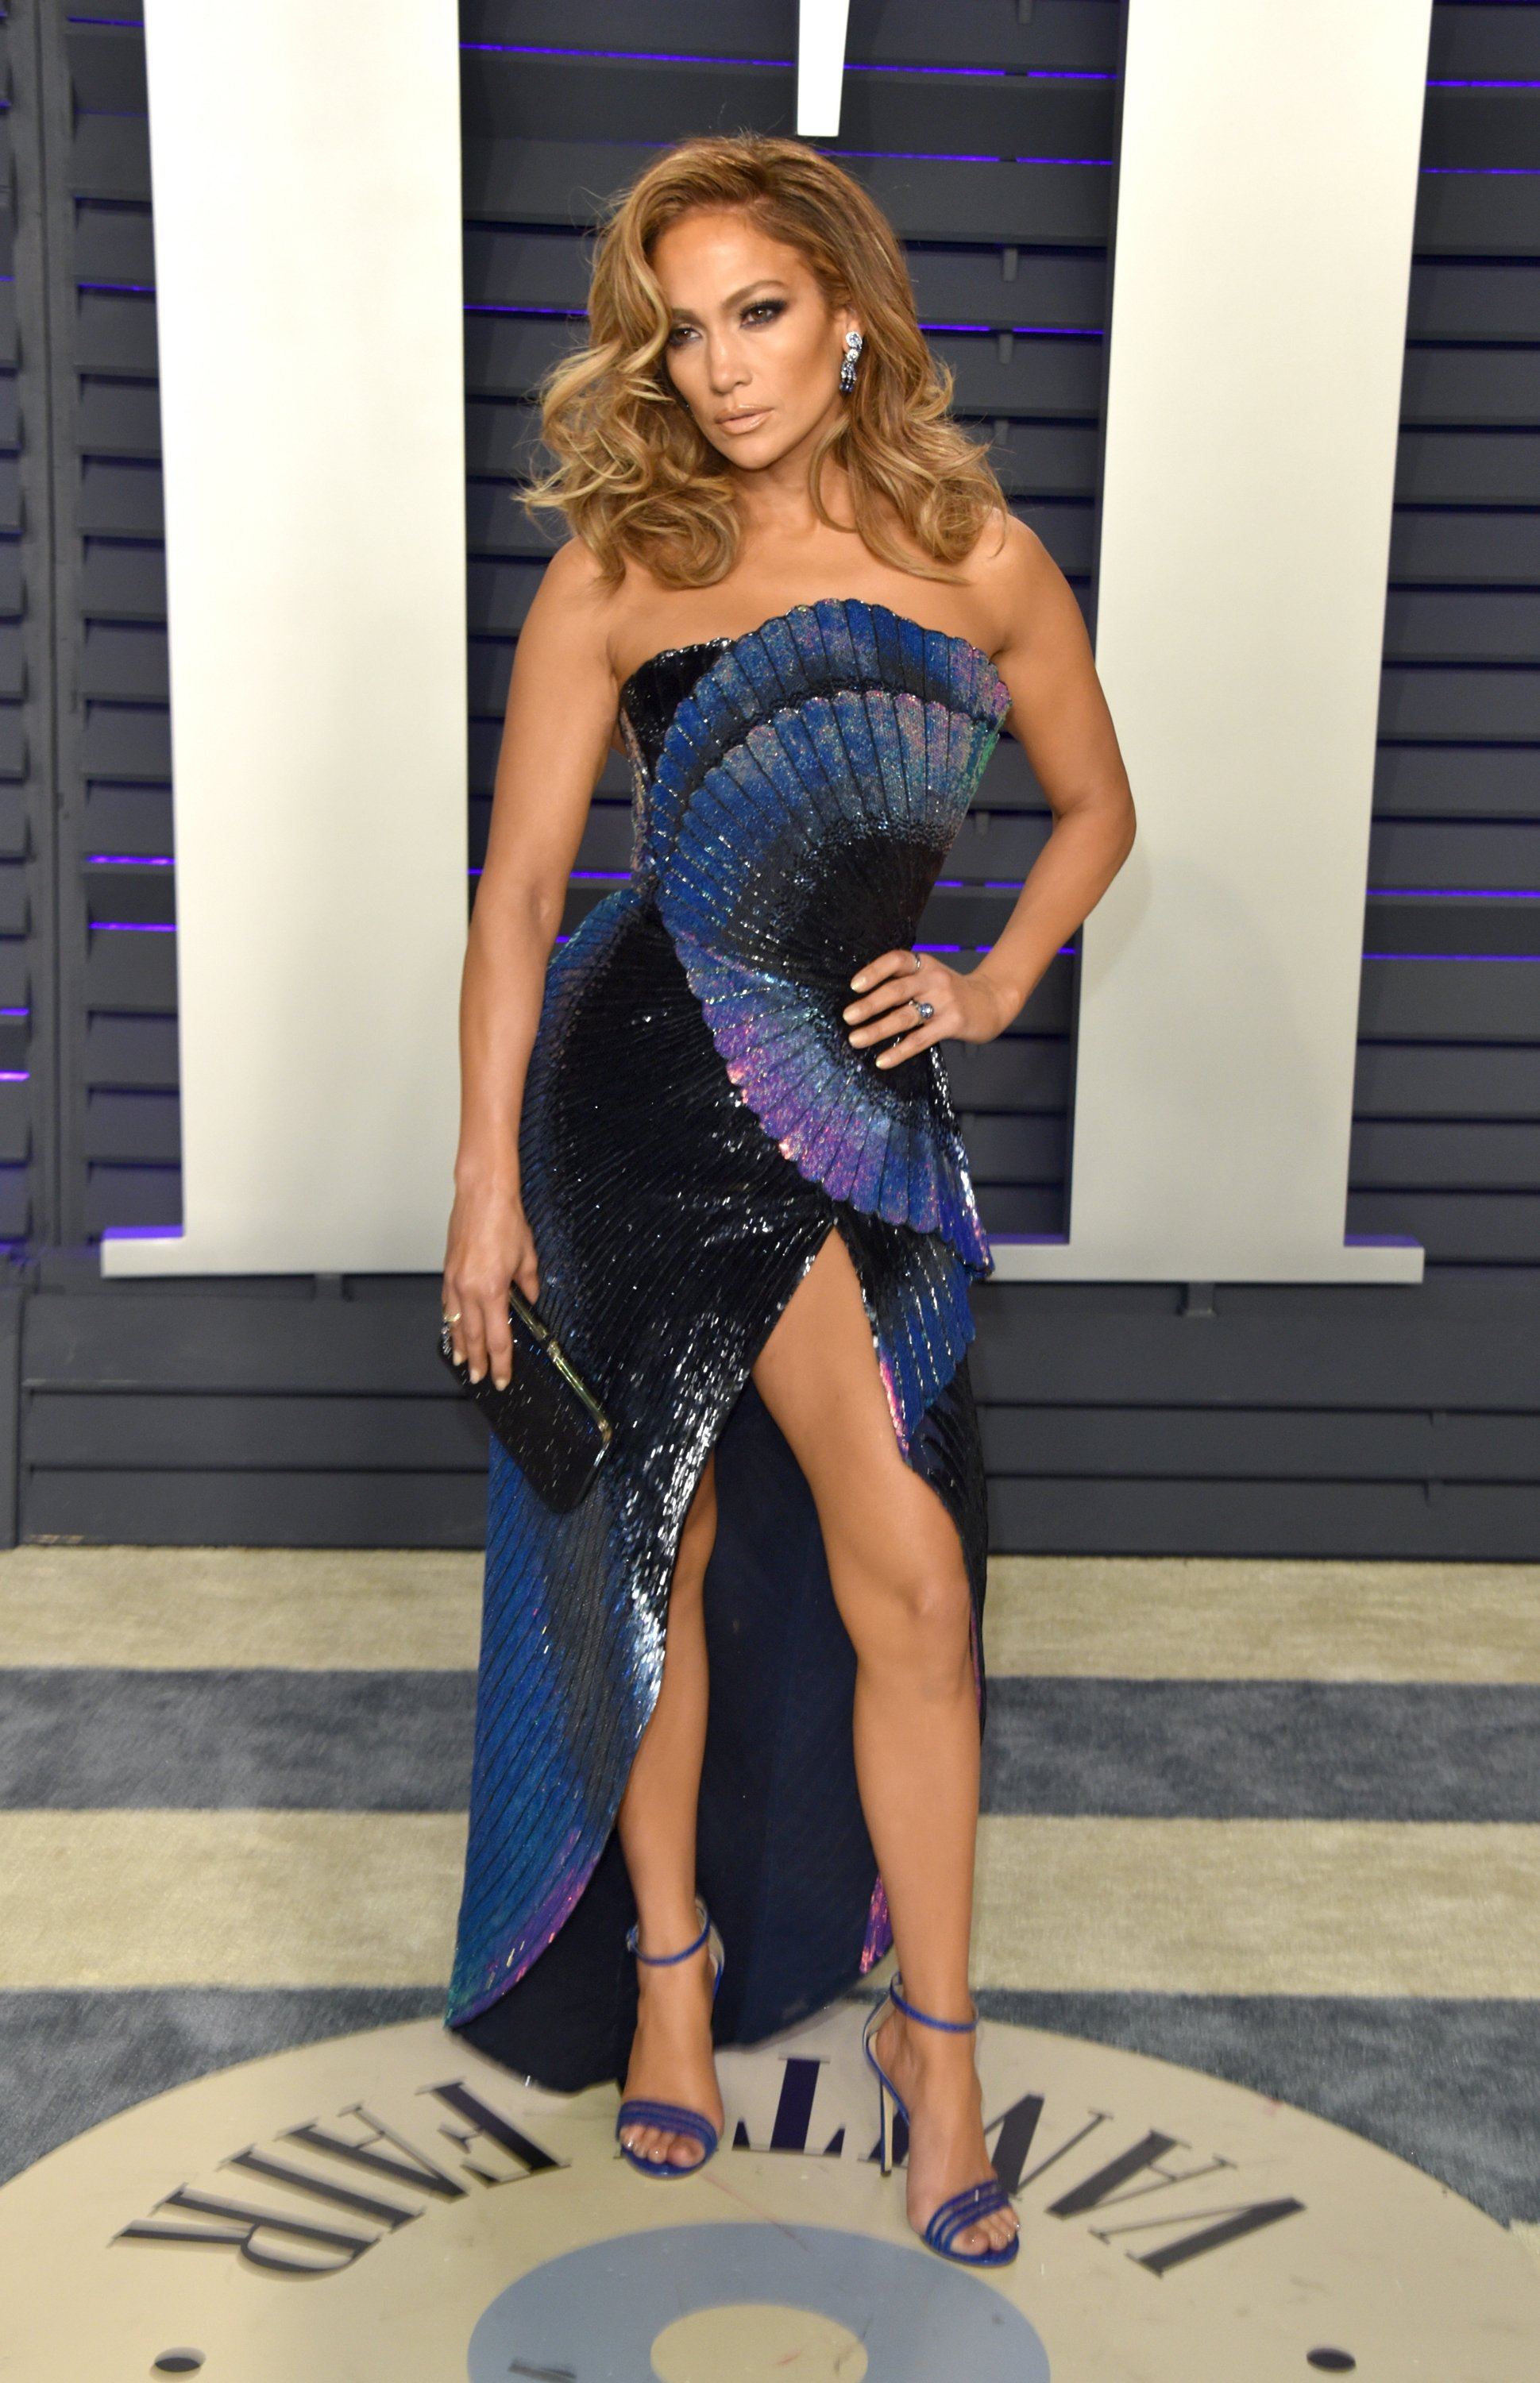 Jennifer Lopez attends the 2019 Vanity Fair Oscar Party at Wallis Annenberg Center for the Performing Arts on February 24, 2019 in Beverly Hills, California | Photo: Getty Images